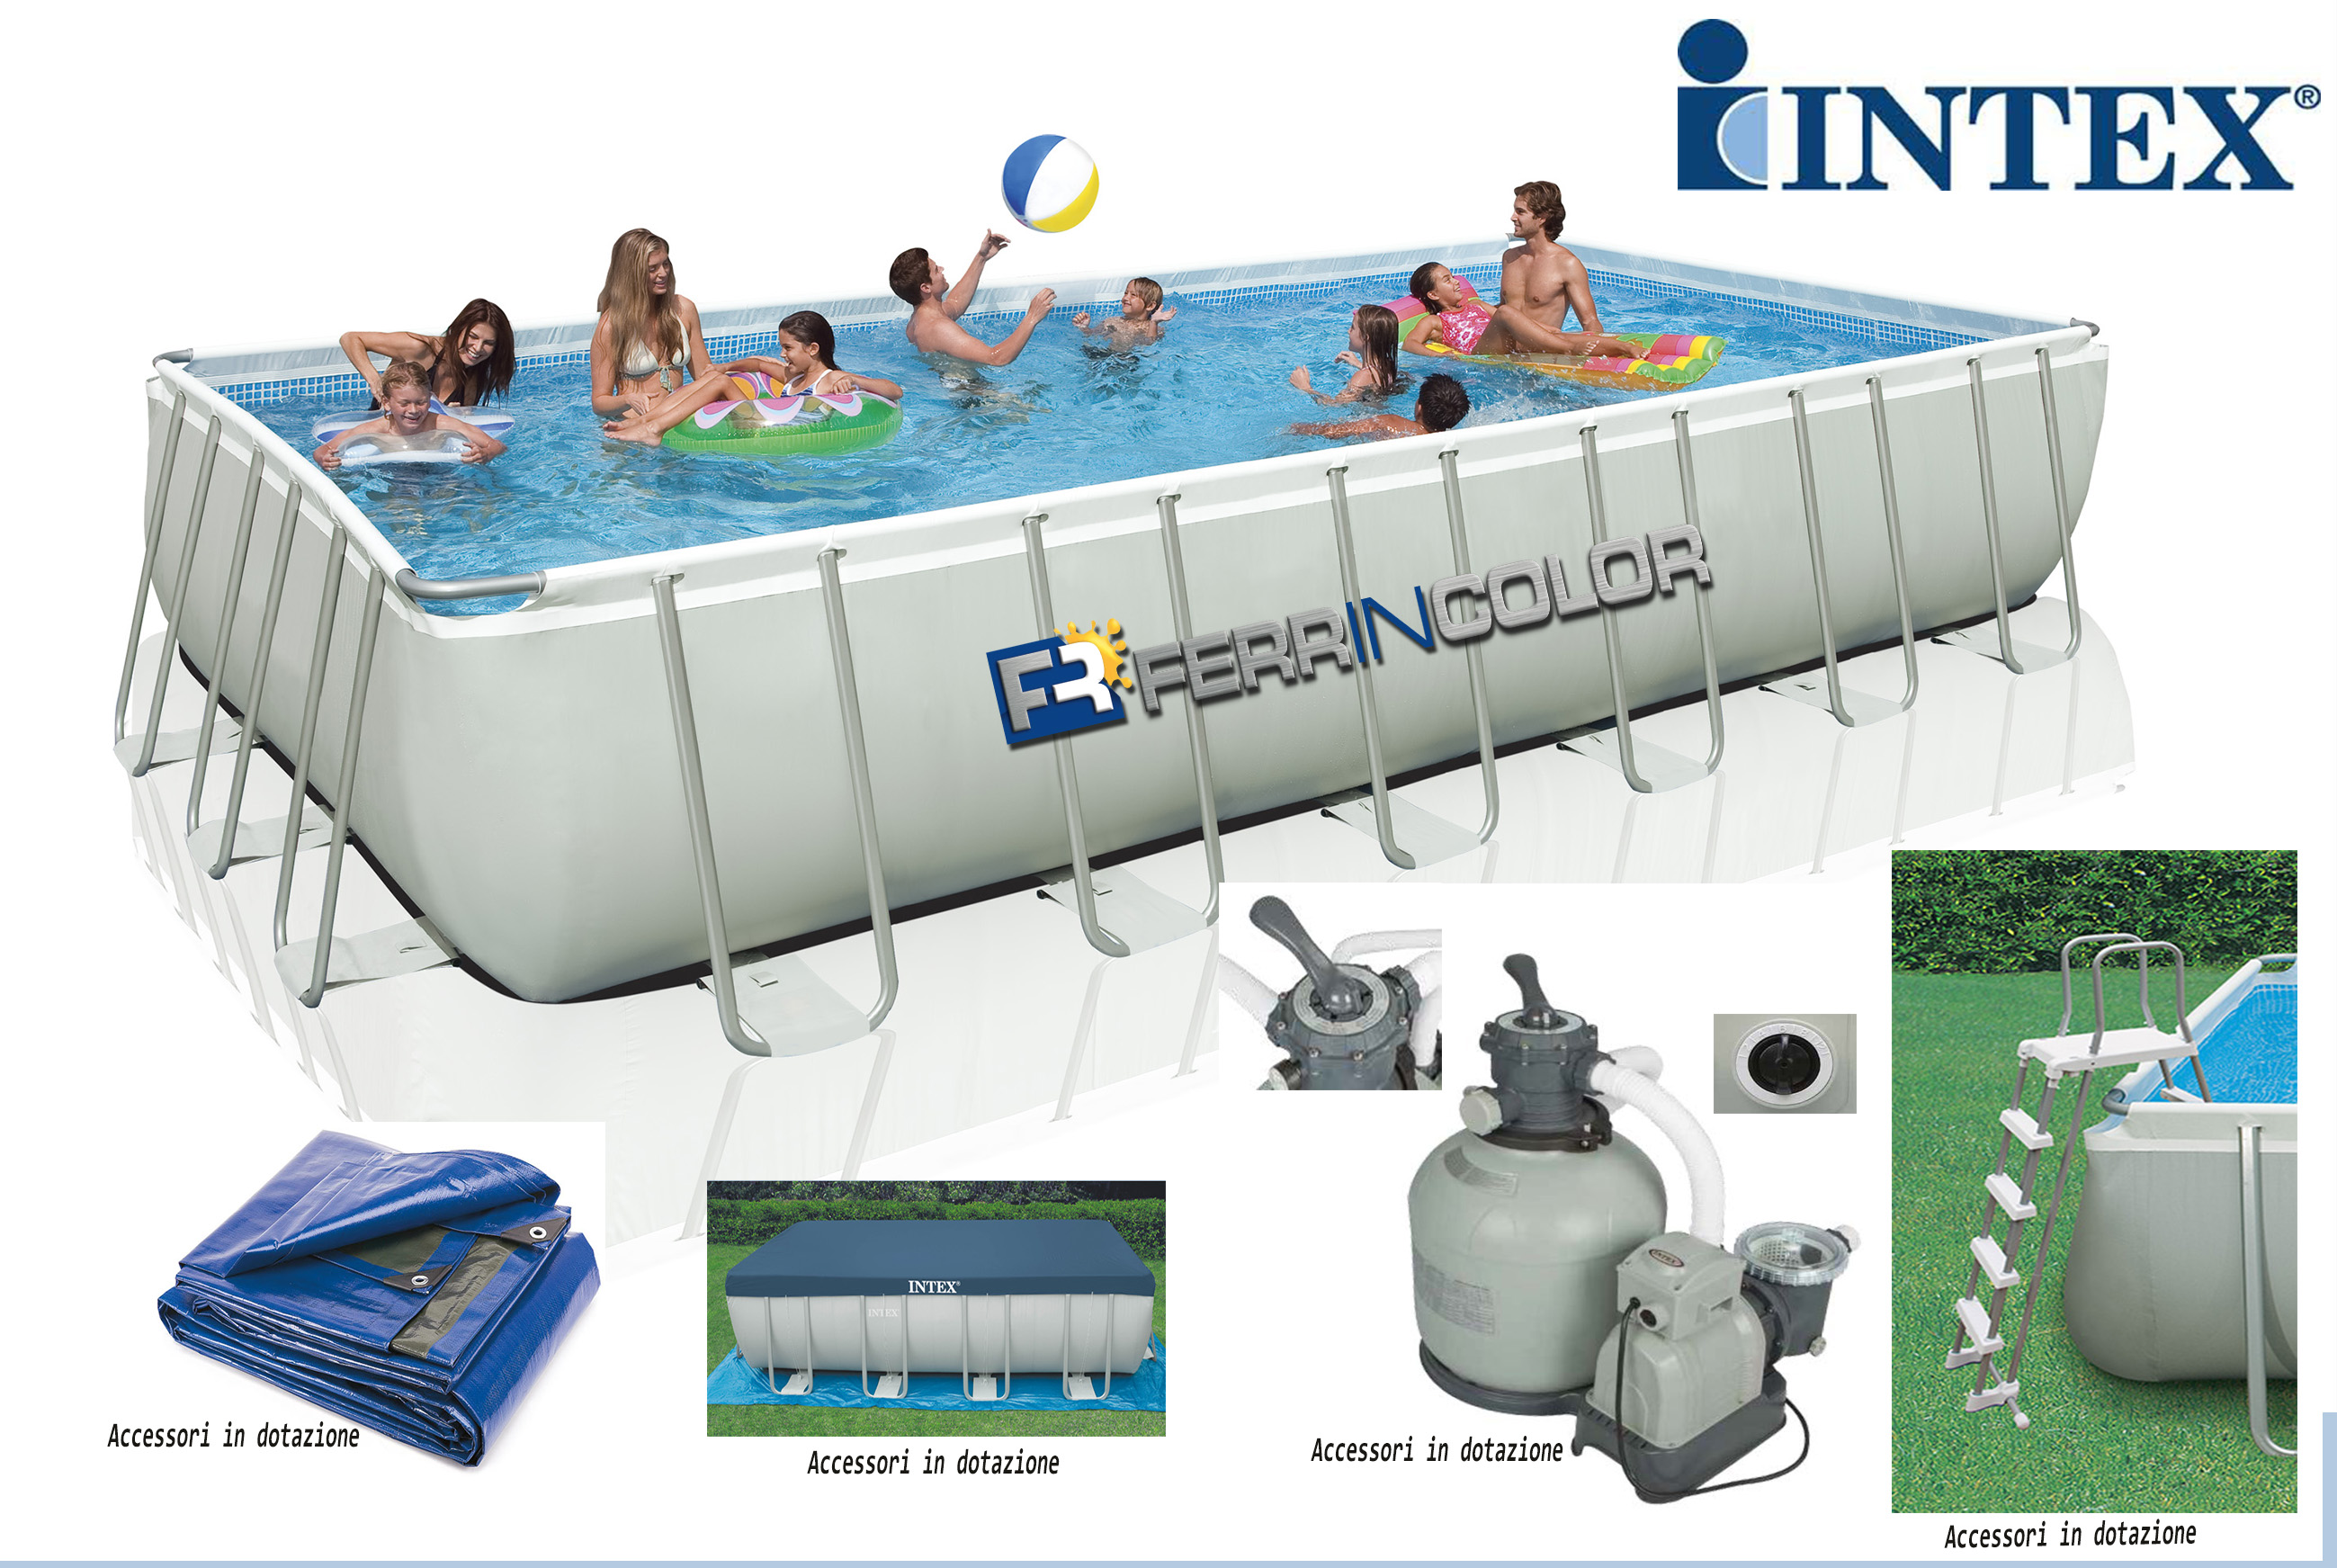 Piscina intex in offerta732x366x132h modello 2017 for Intex piscine ricambi